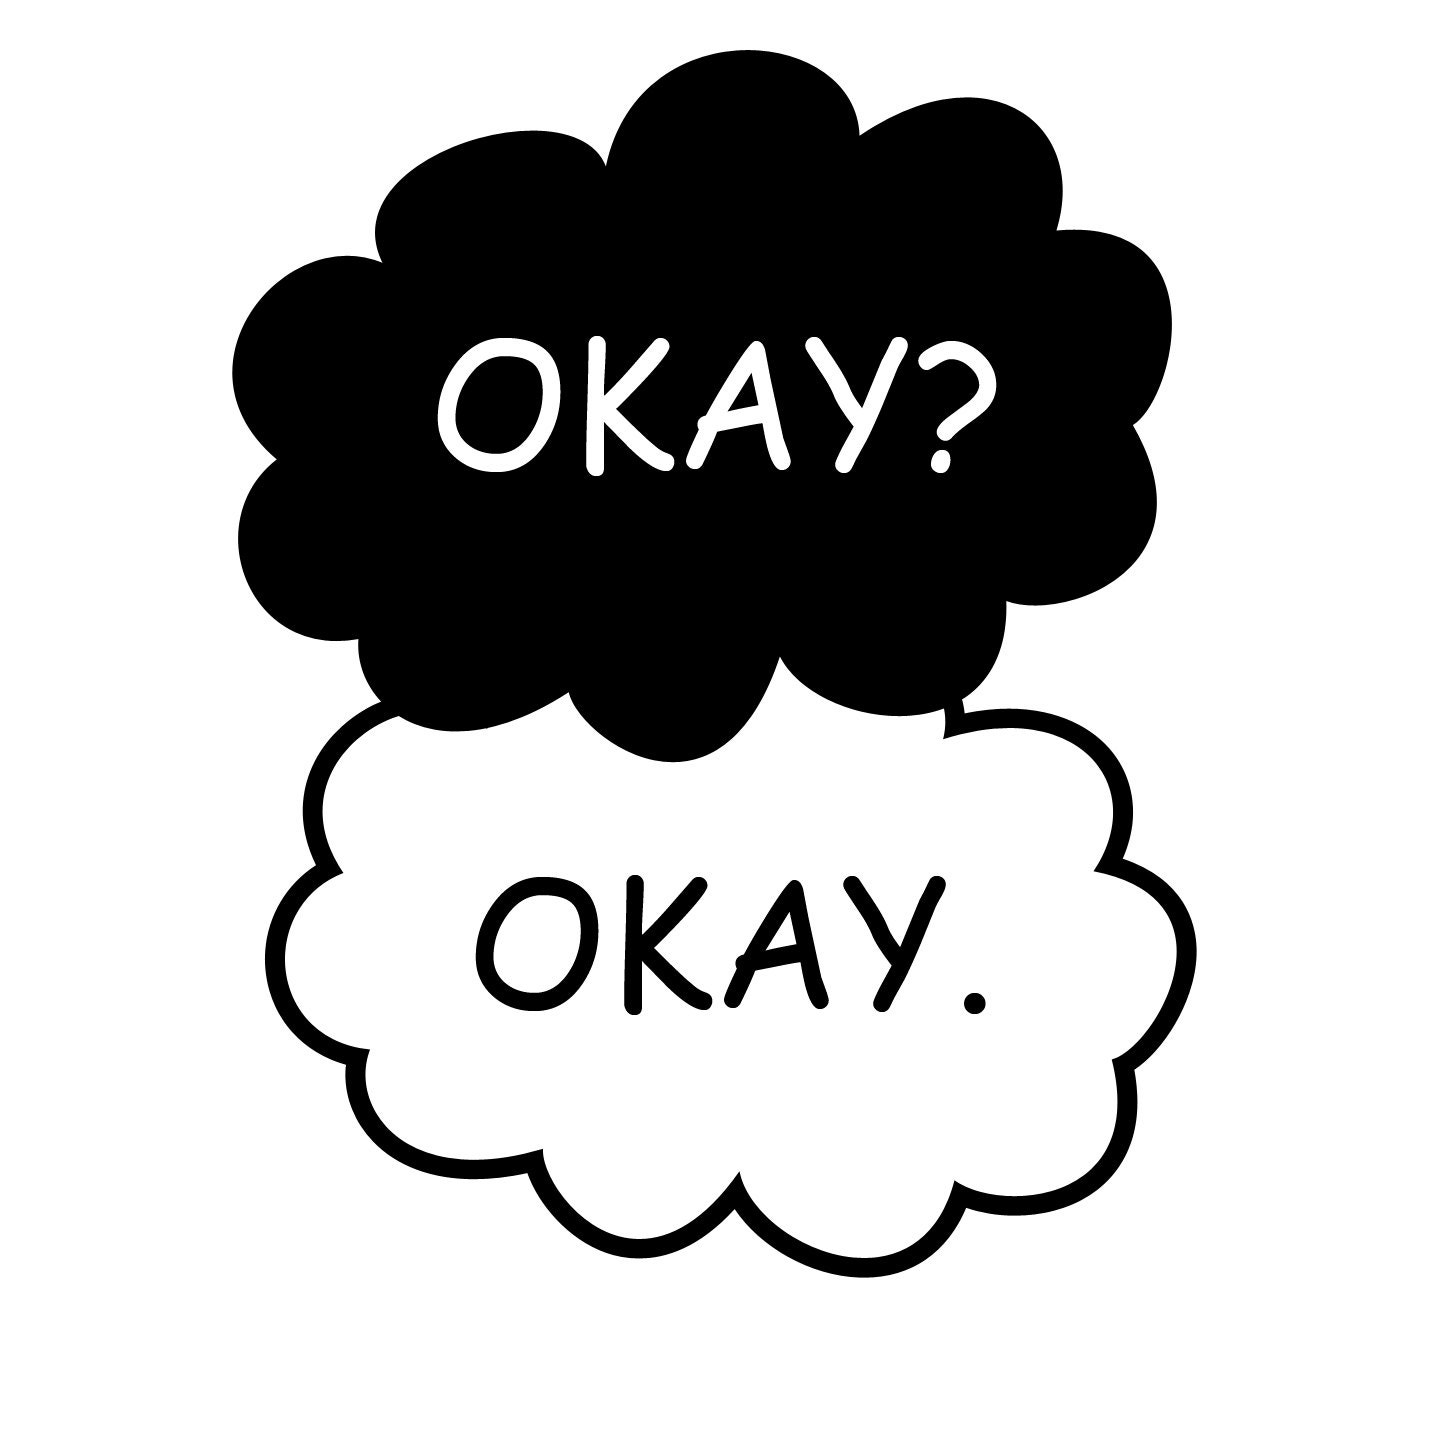 T.F.I.O.S. Okay Okay. Clouds or CUSTOM Text Decal Sticker